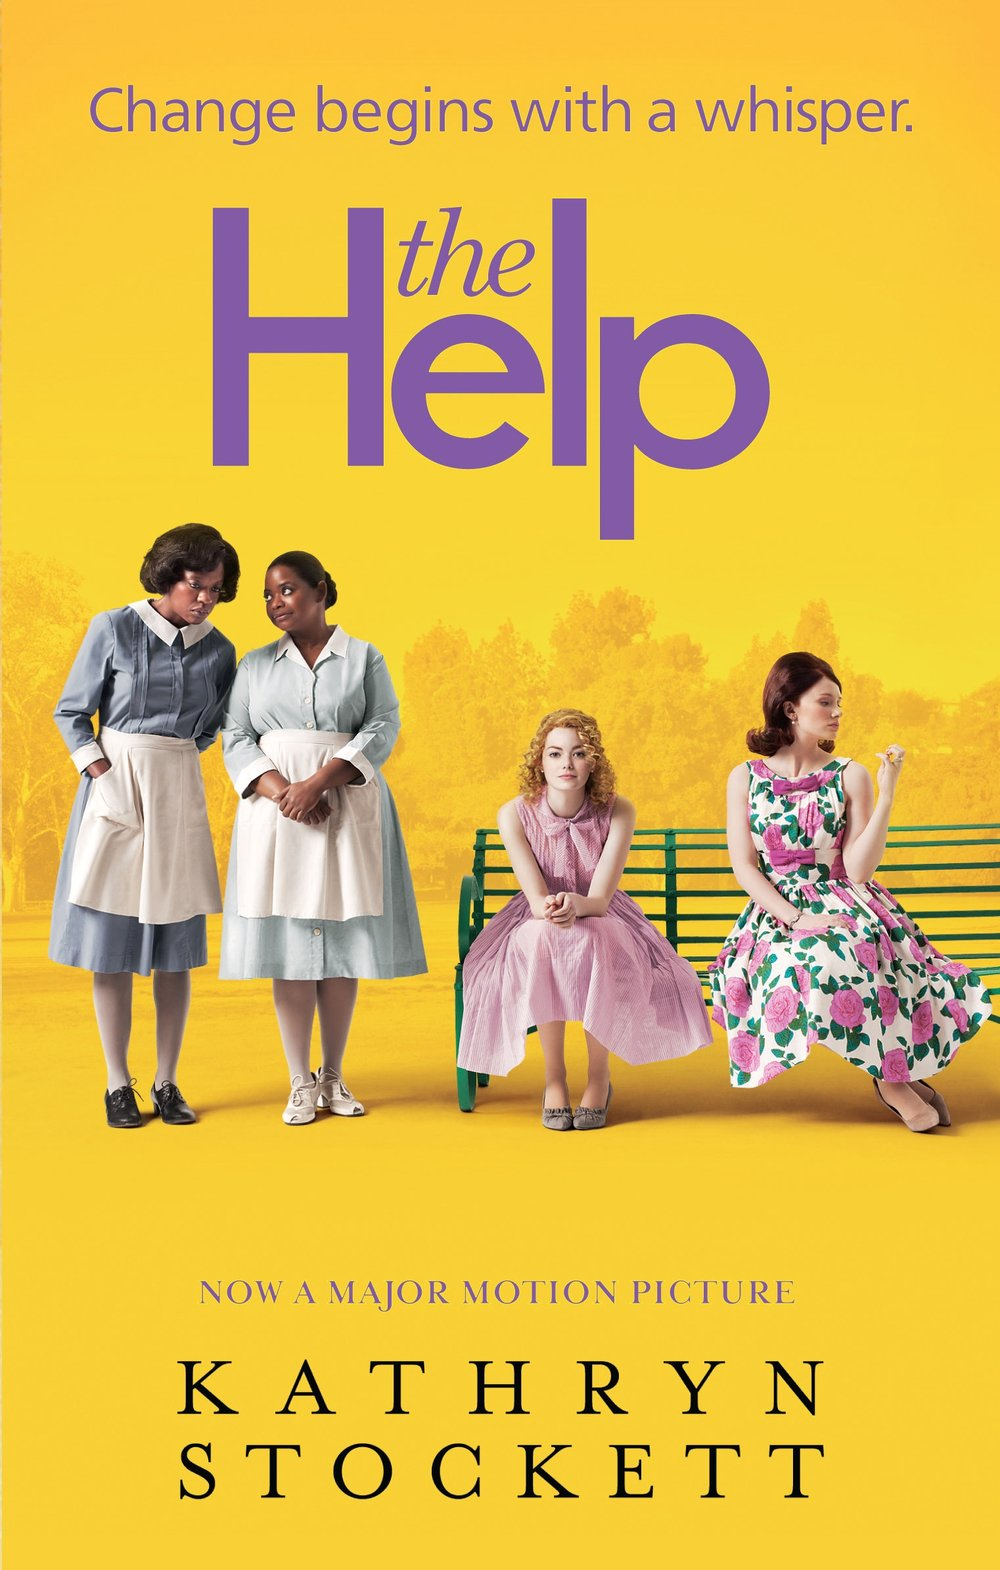 the-help-book-cover.jpg